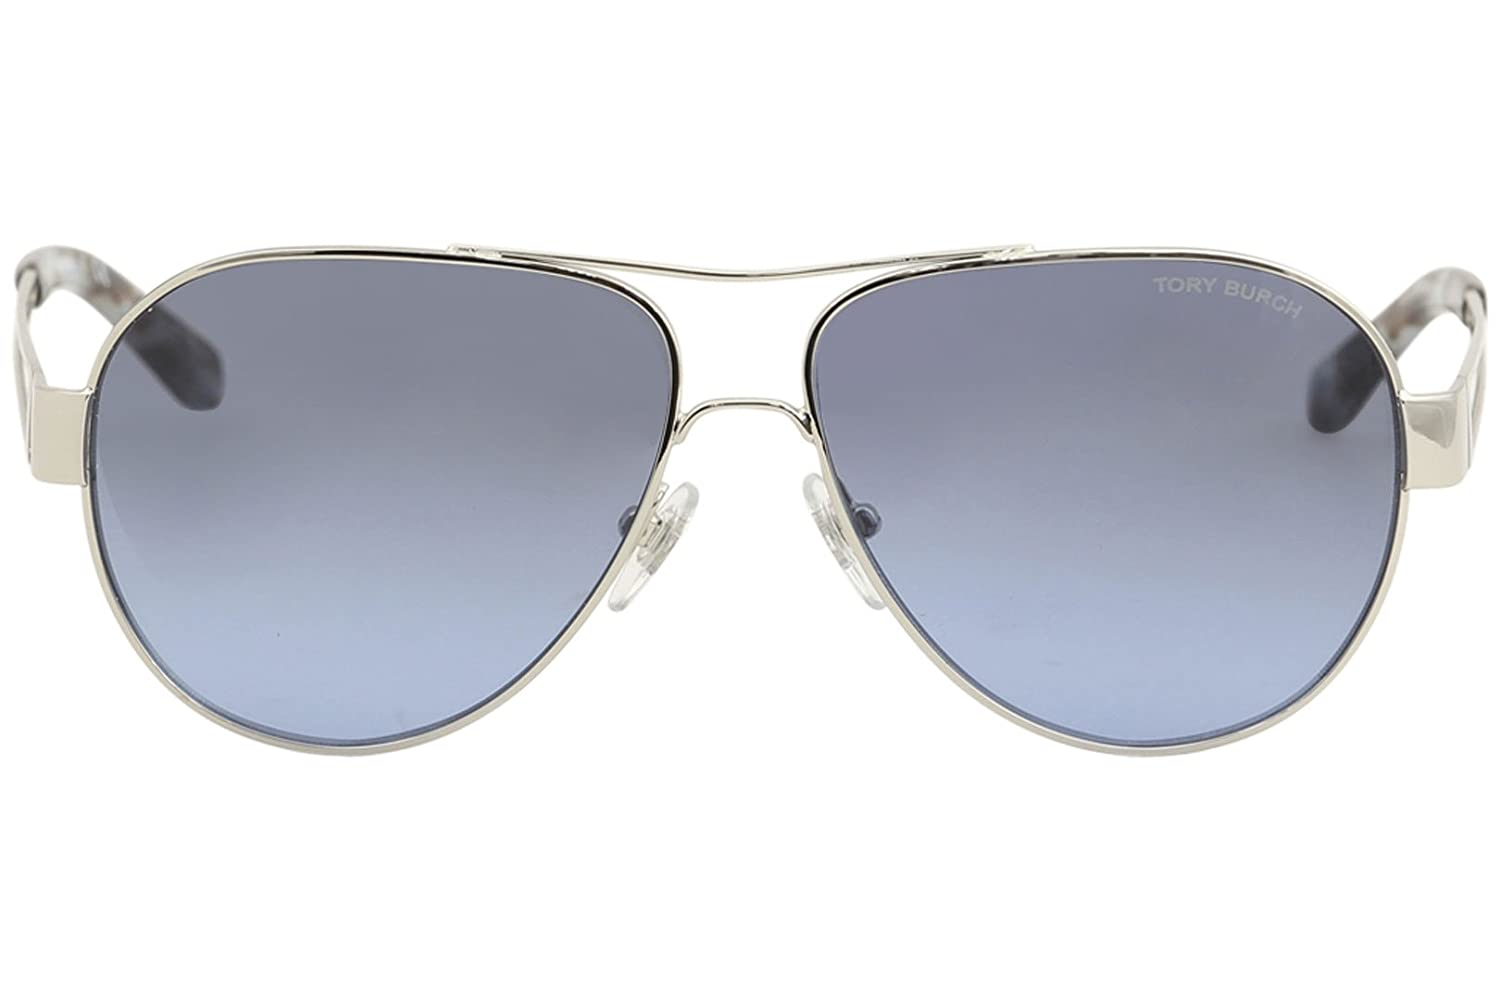 22a54a3508 Amazon.com  Tory Burch Women s 0TY6060 55mm Silver Blue Grey Gradient One  Size  Clothing